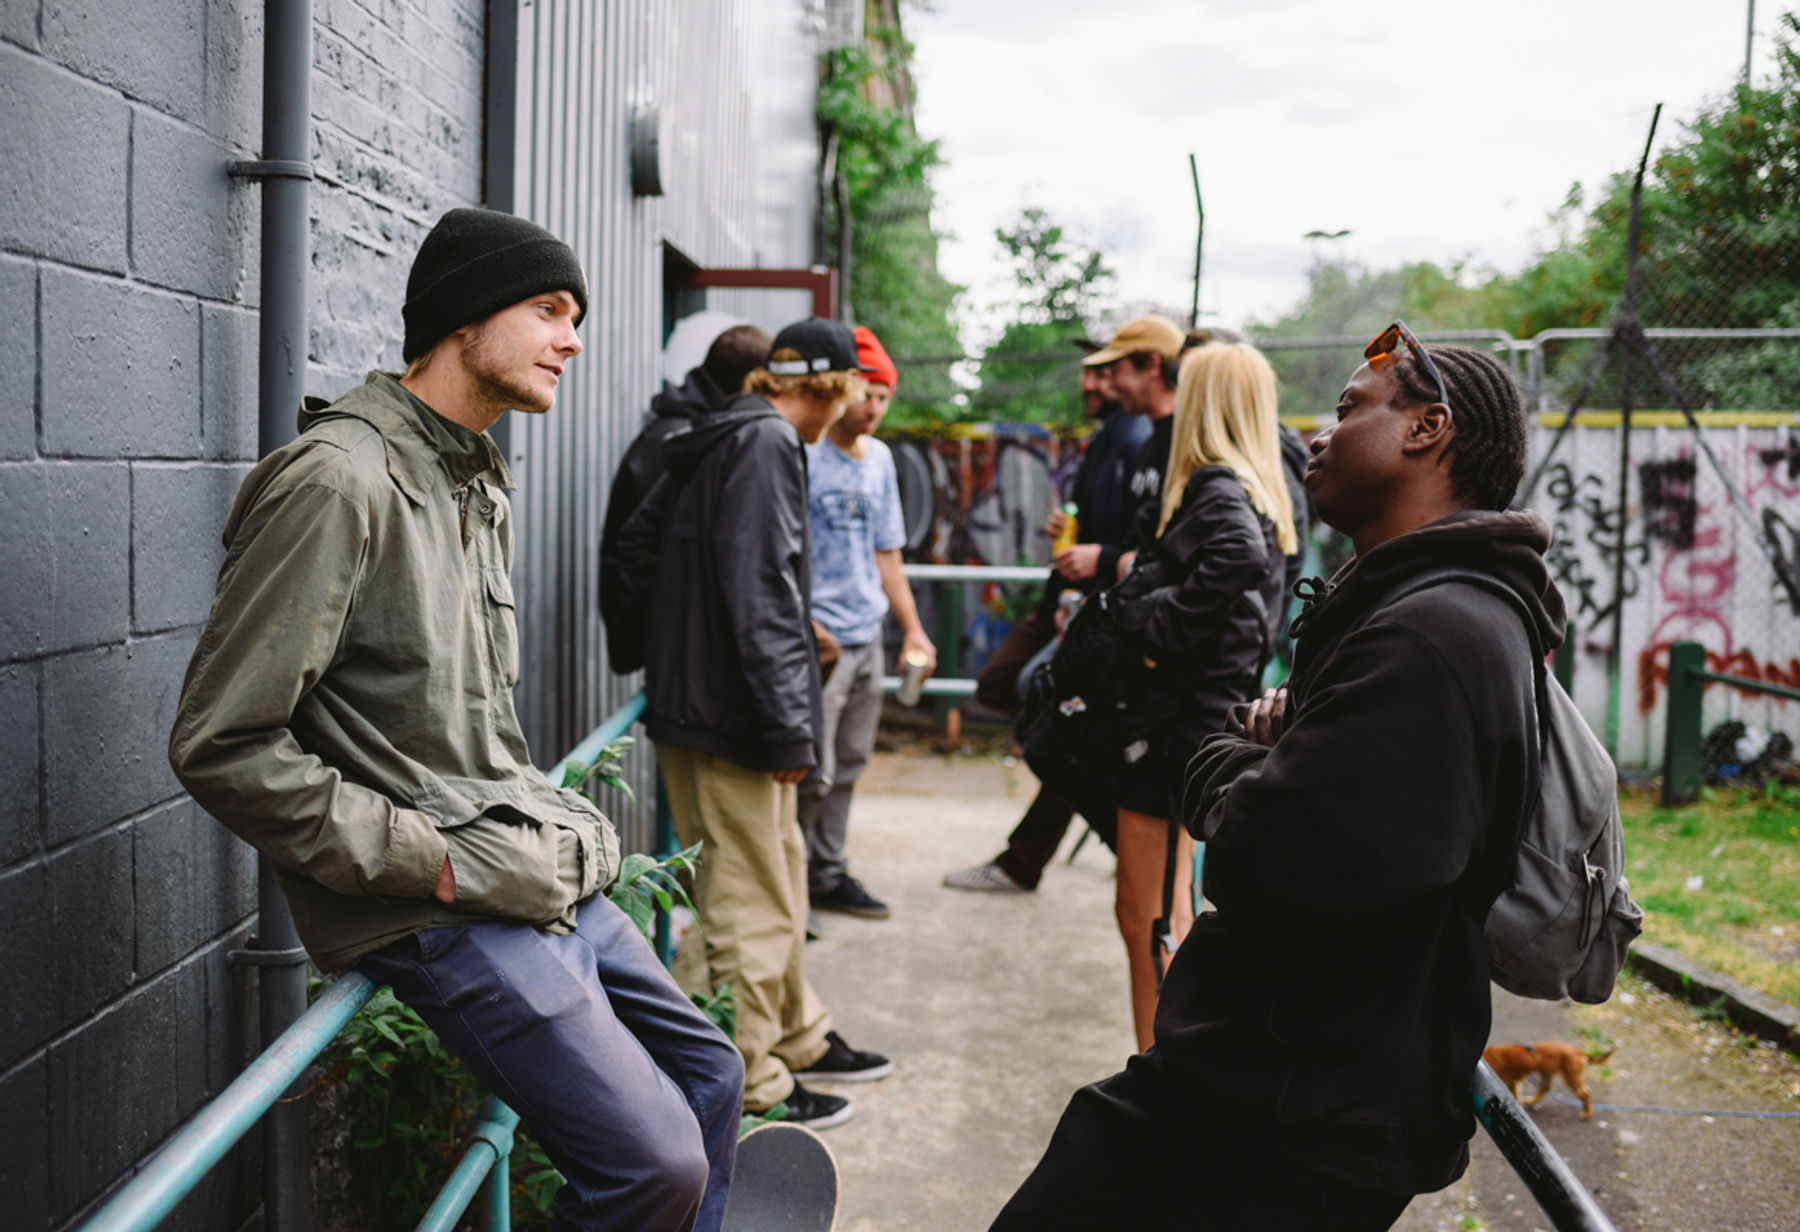 _IHC3505e-Frobisher-Froby-Mbabazi-Madars-Apse-DC-Special-Delivery-Skate-Tour-BTS-Demo-Mile-End-London-May-2015-Photographer-Maksim-Kalanep